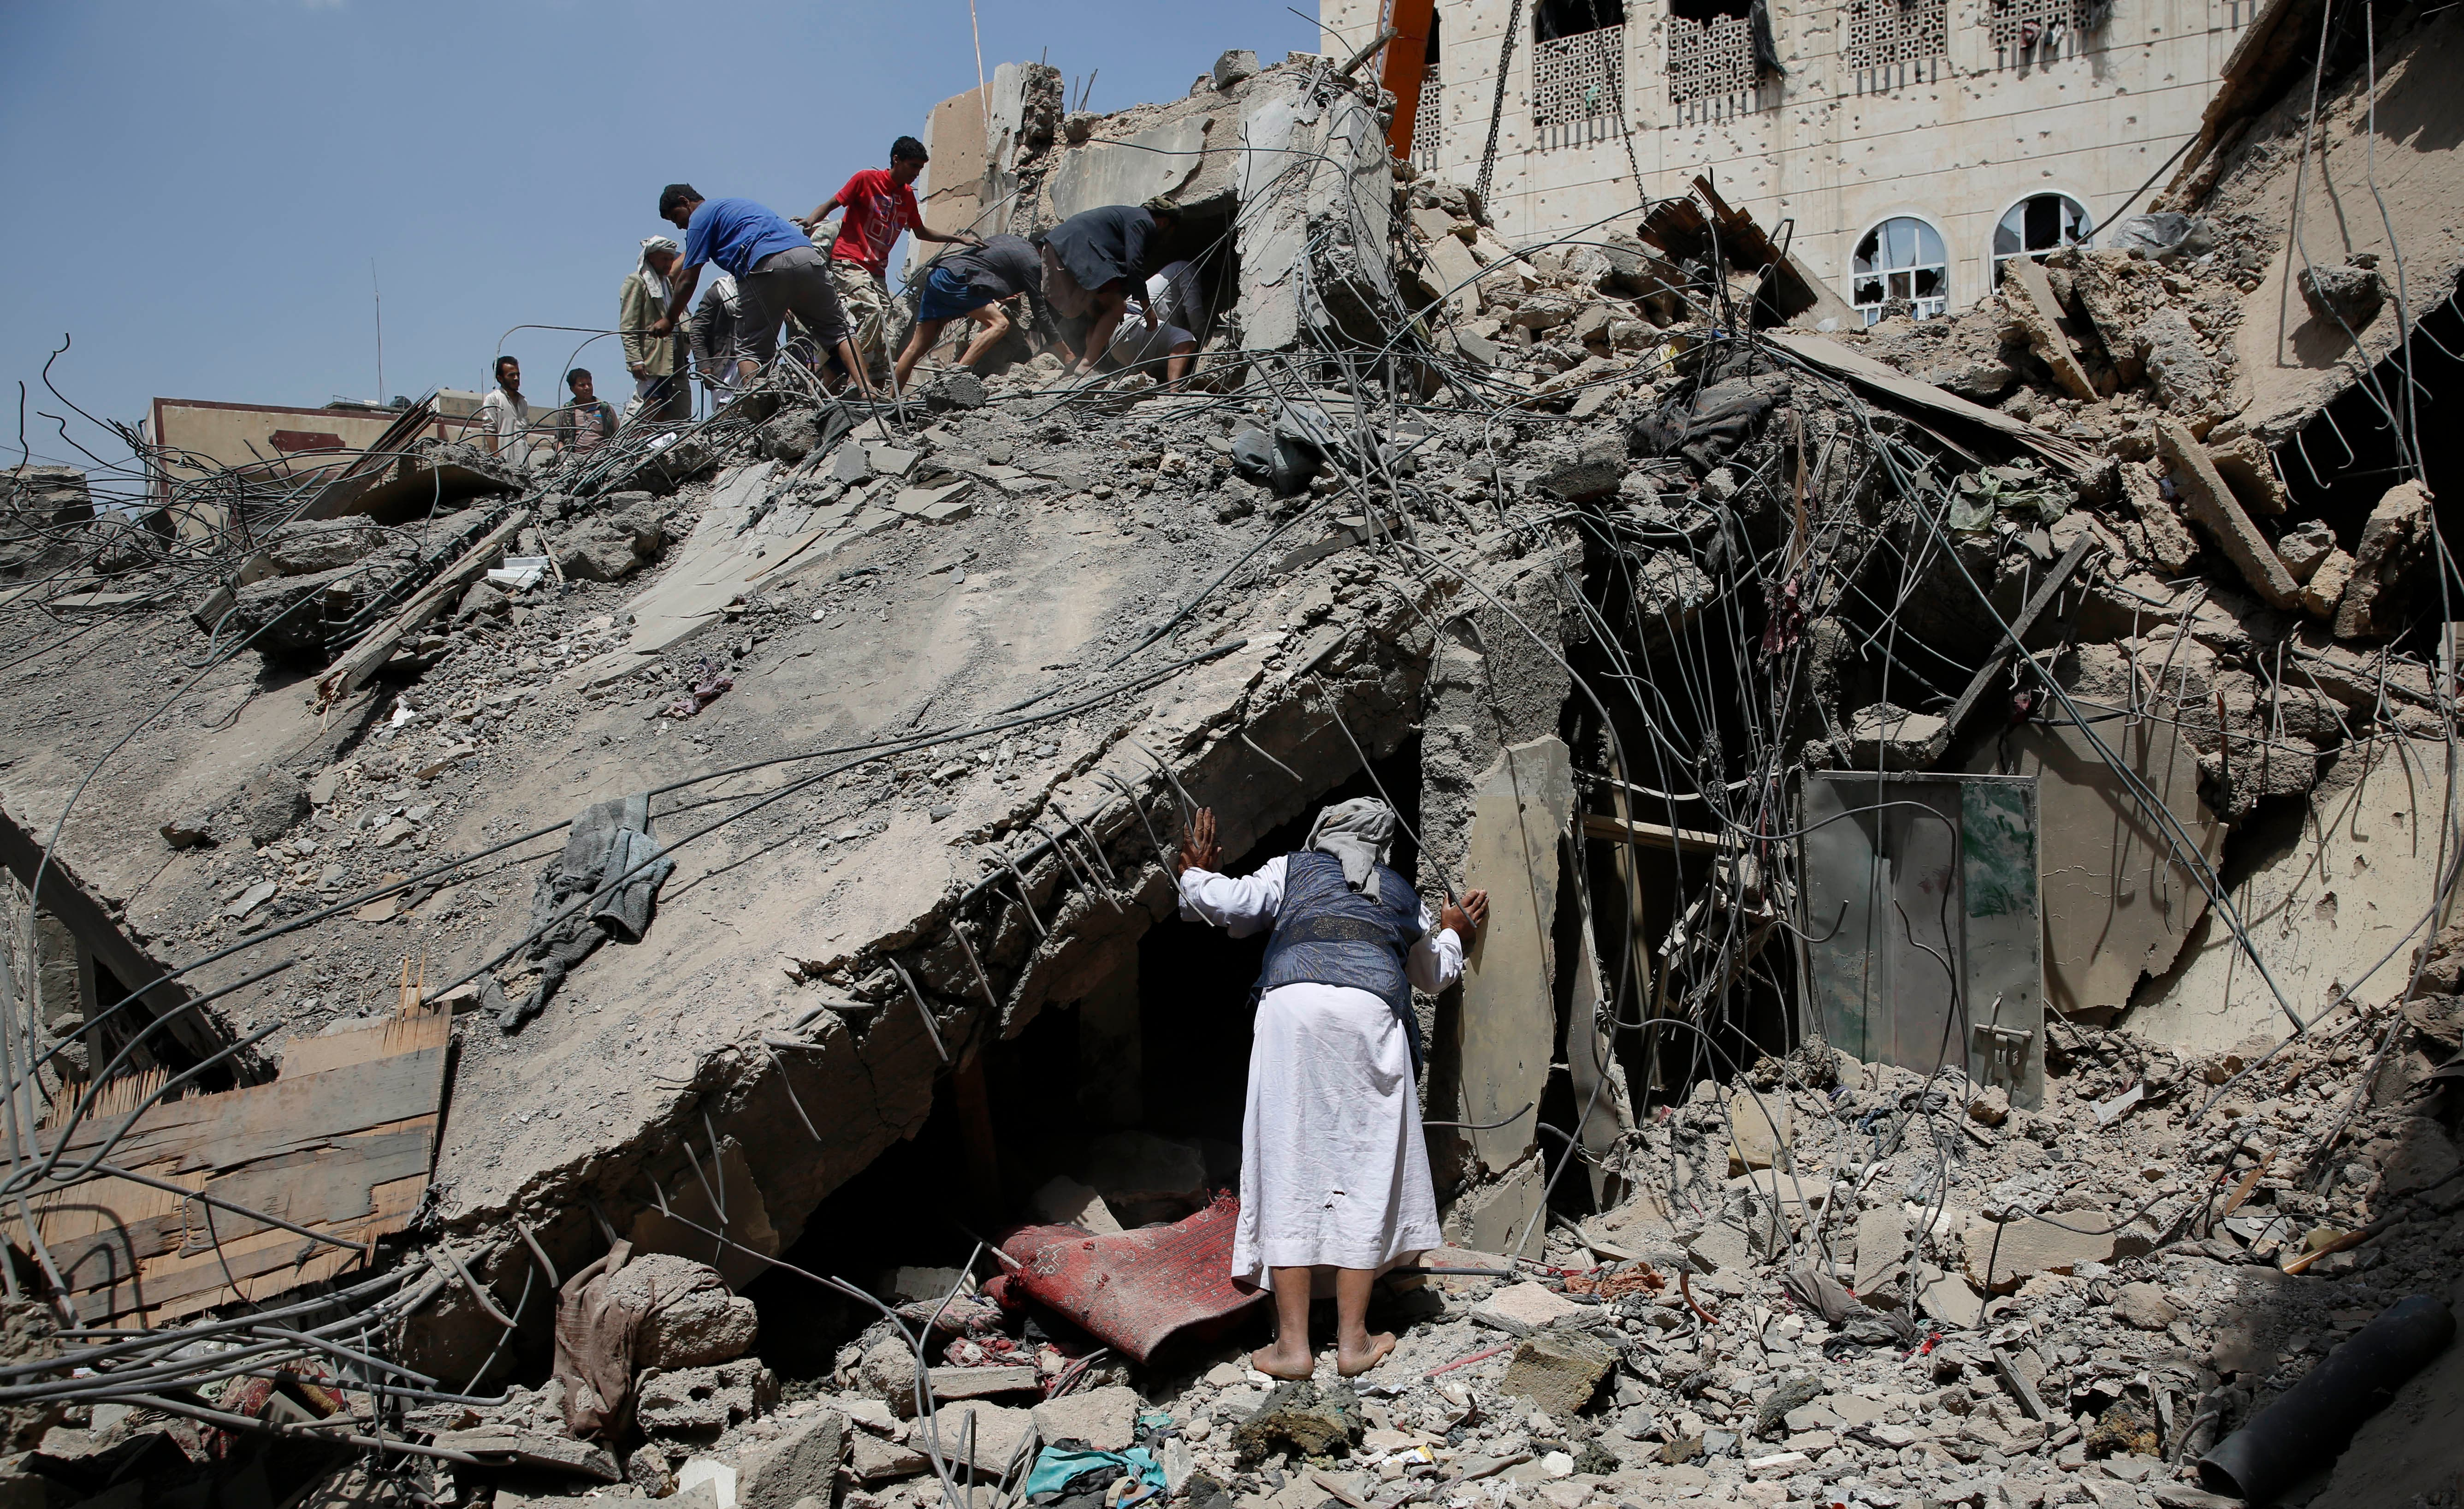 People search for survivors amid the rubble of houses destroyed in a Saudi-led airstrike in Sanaa, Yemen, Monday, Sept. 21, 2015. (AP Photo/Hani Mohammed)